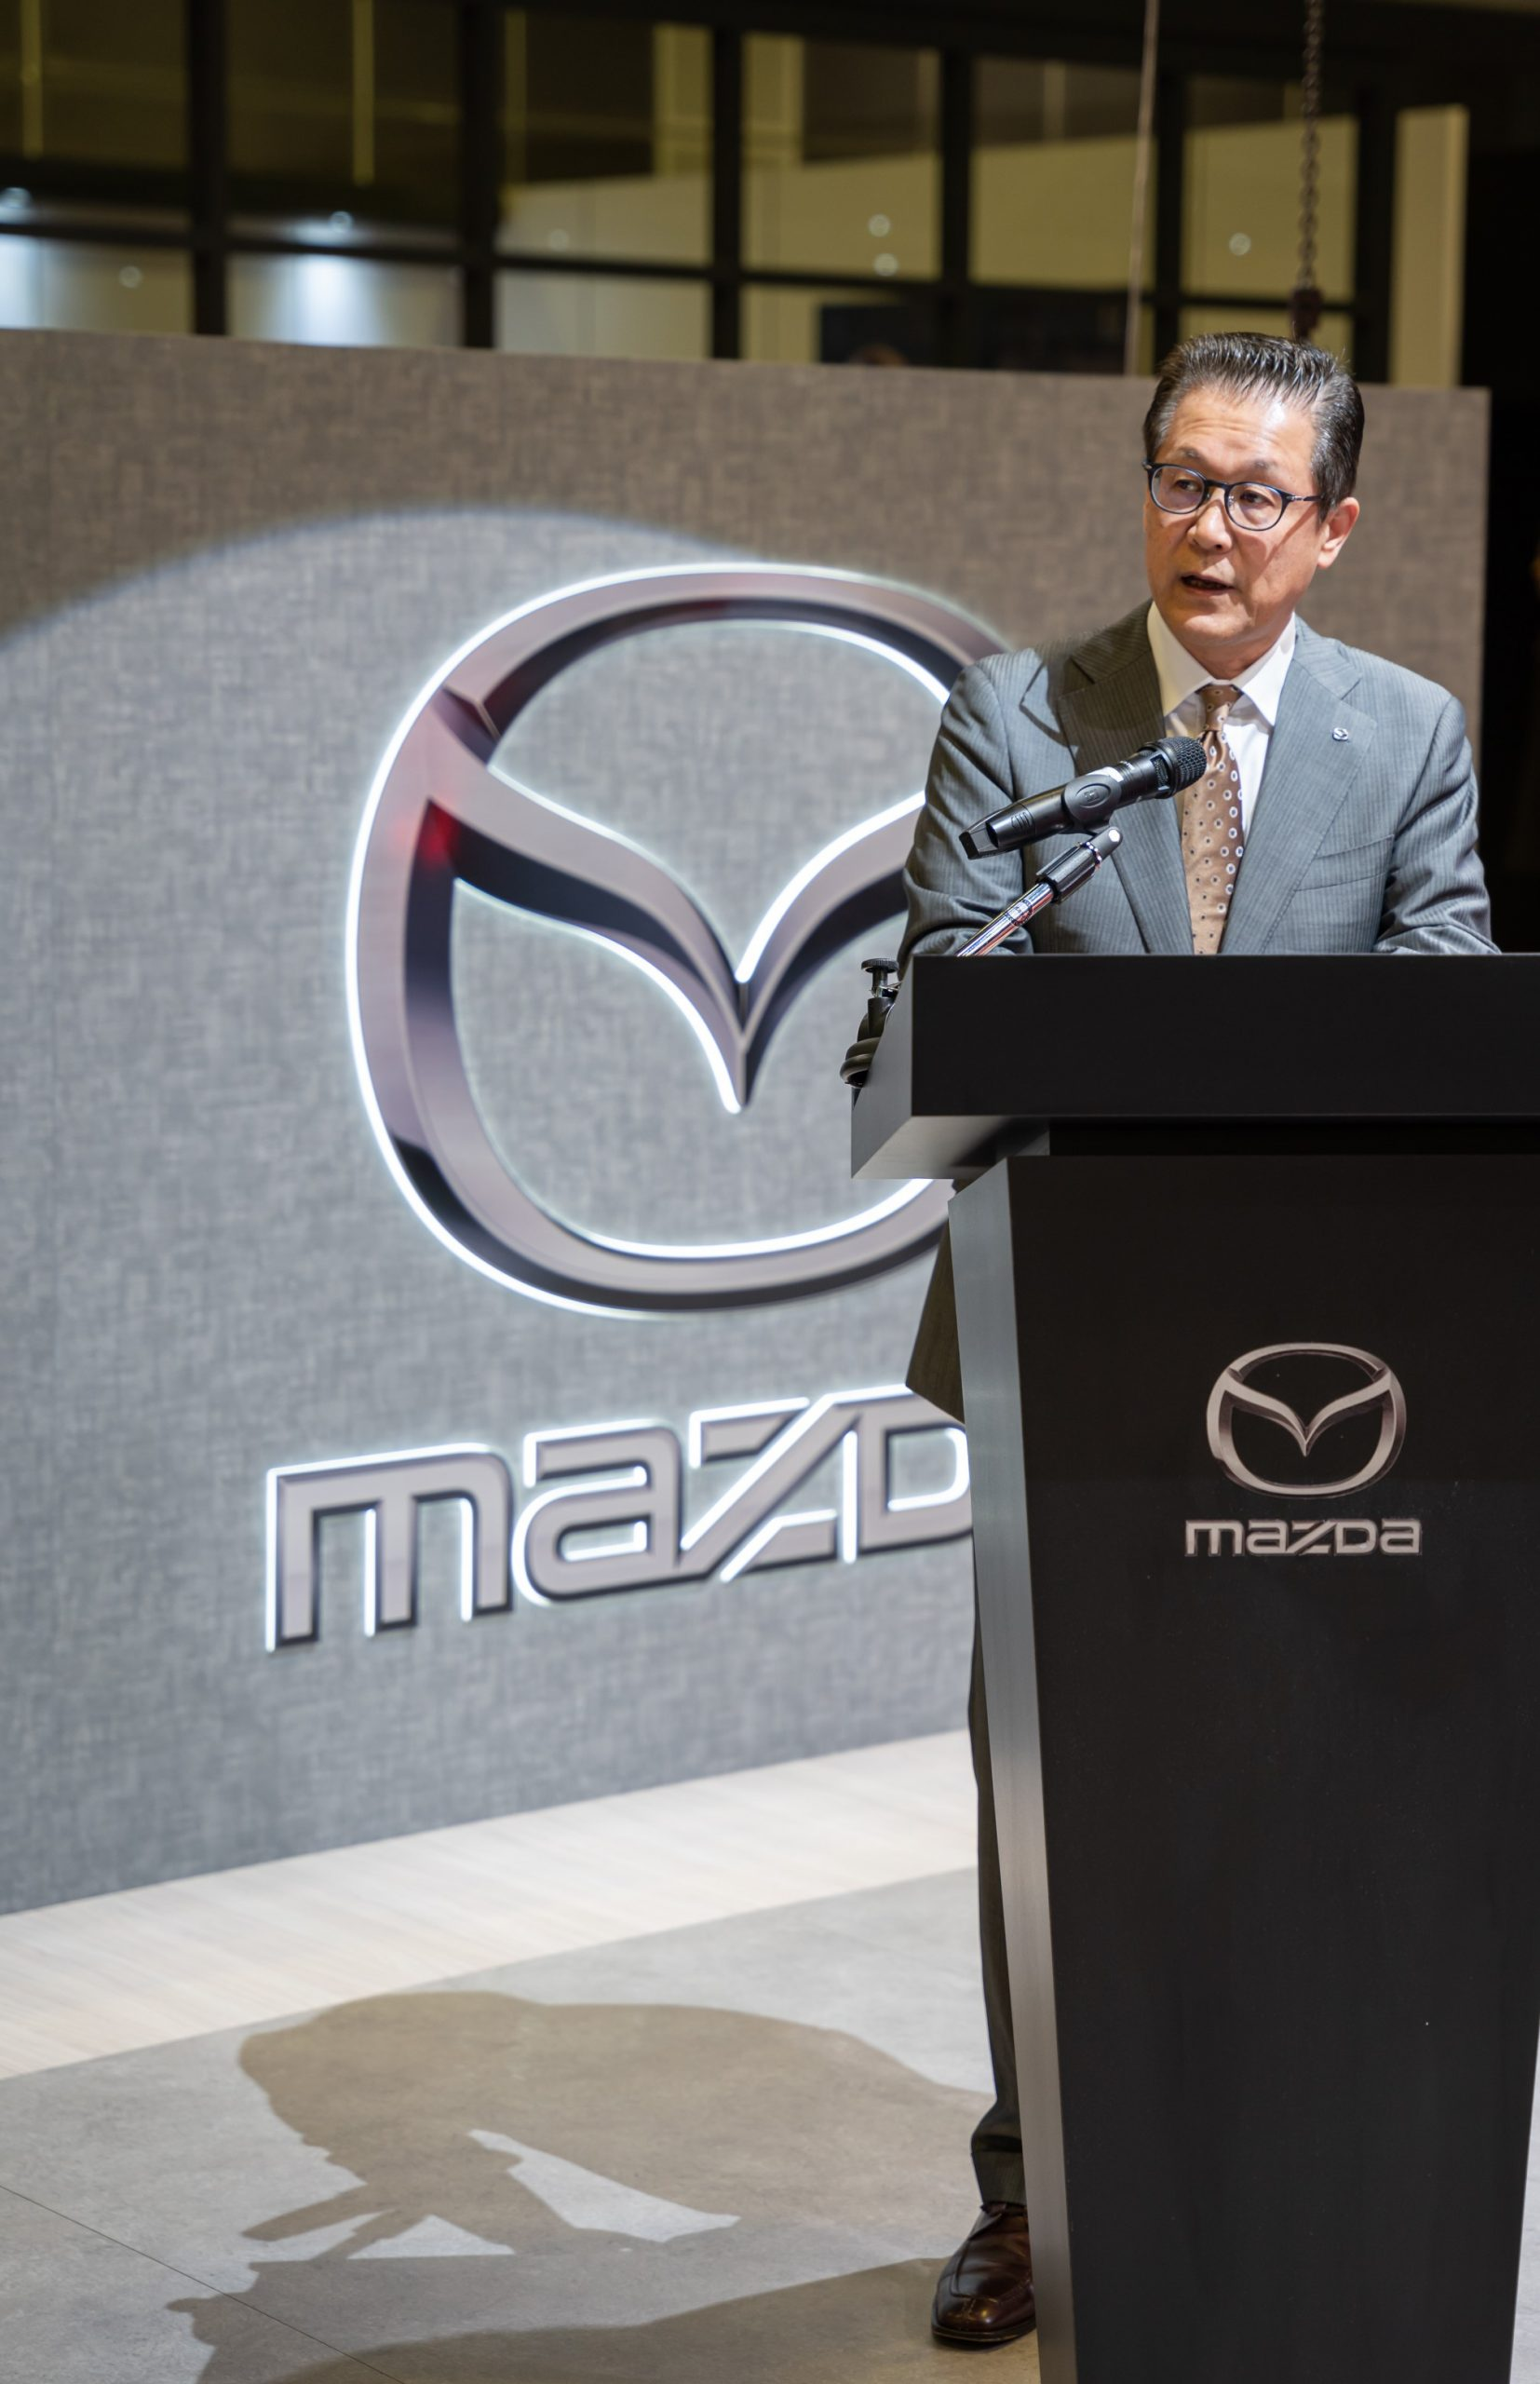 Mazda Motor Corporation General Manager ASEAN Business Office Mr Susumu Niinai delivering his speech during the unveiling of the all-new Mazda CX-30 and Mazda CX-8 at the Singapore Motorshow 2020.